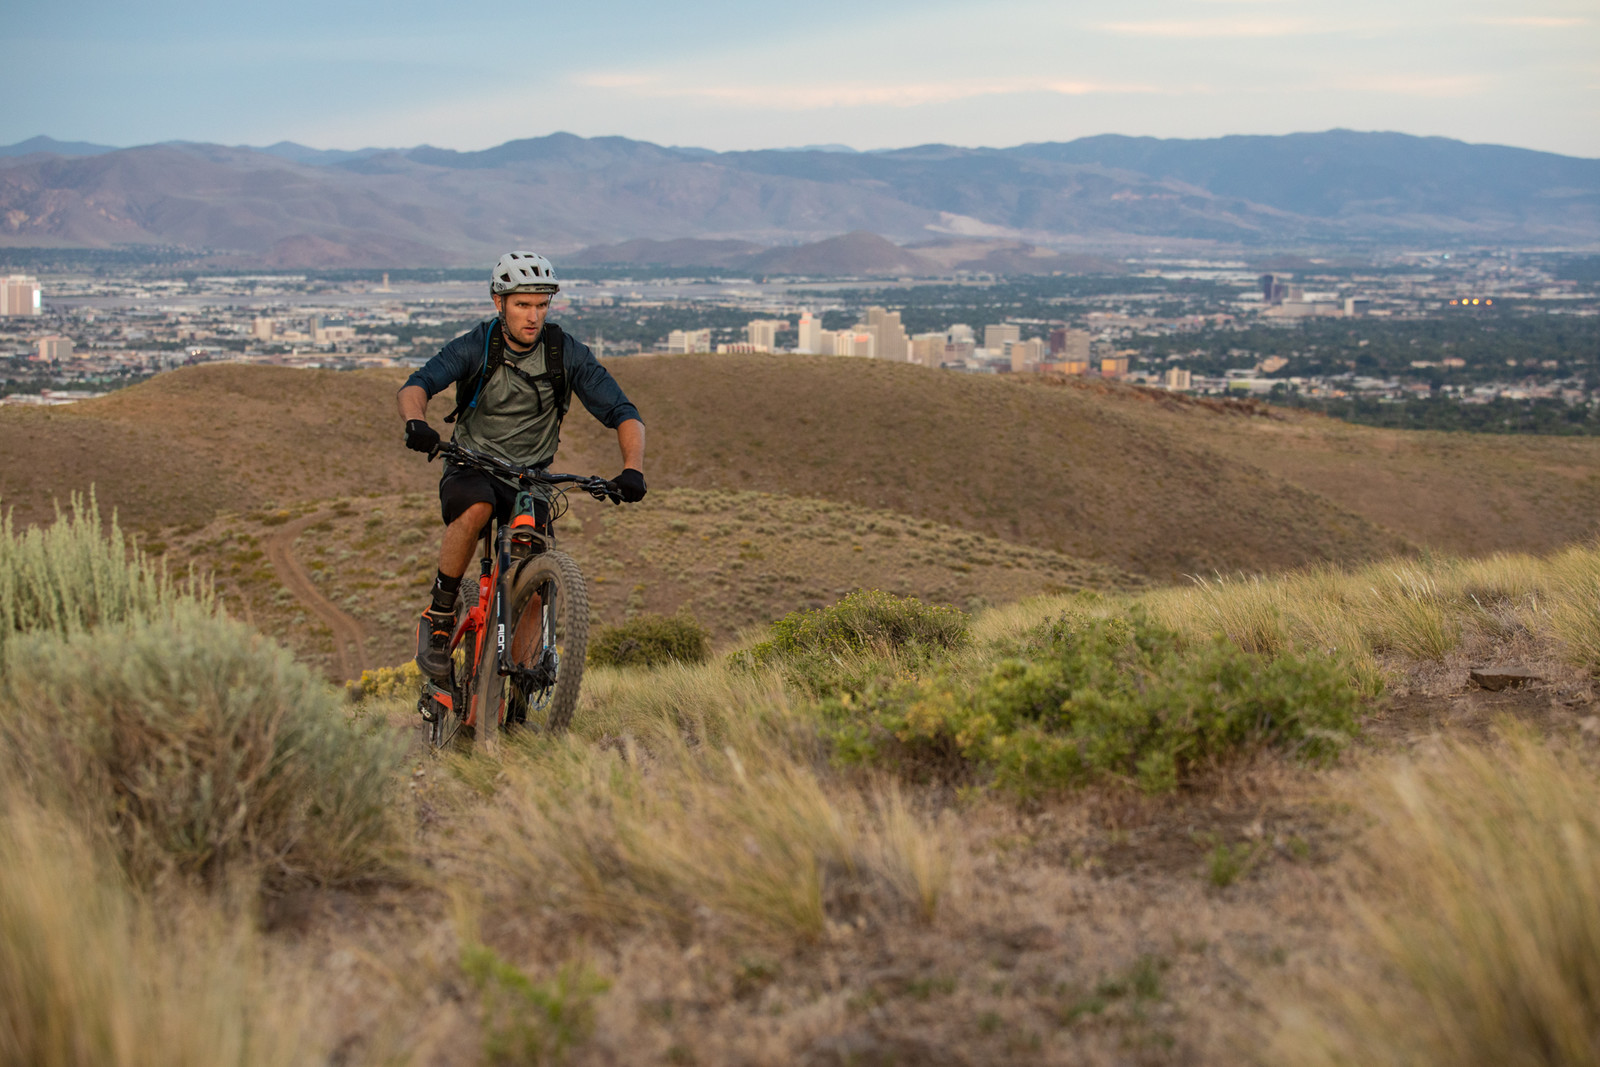 Paul riding his local trails in Reno, NV